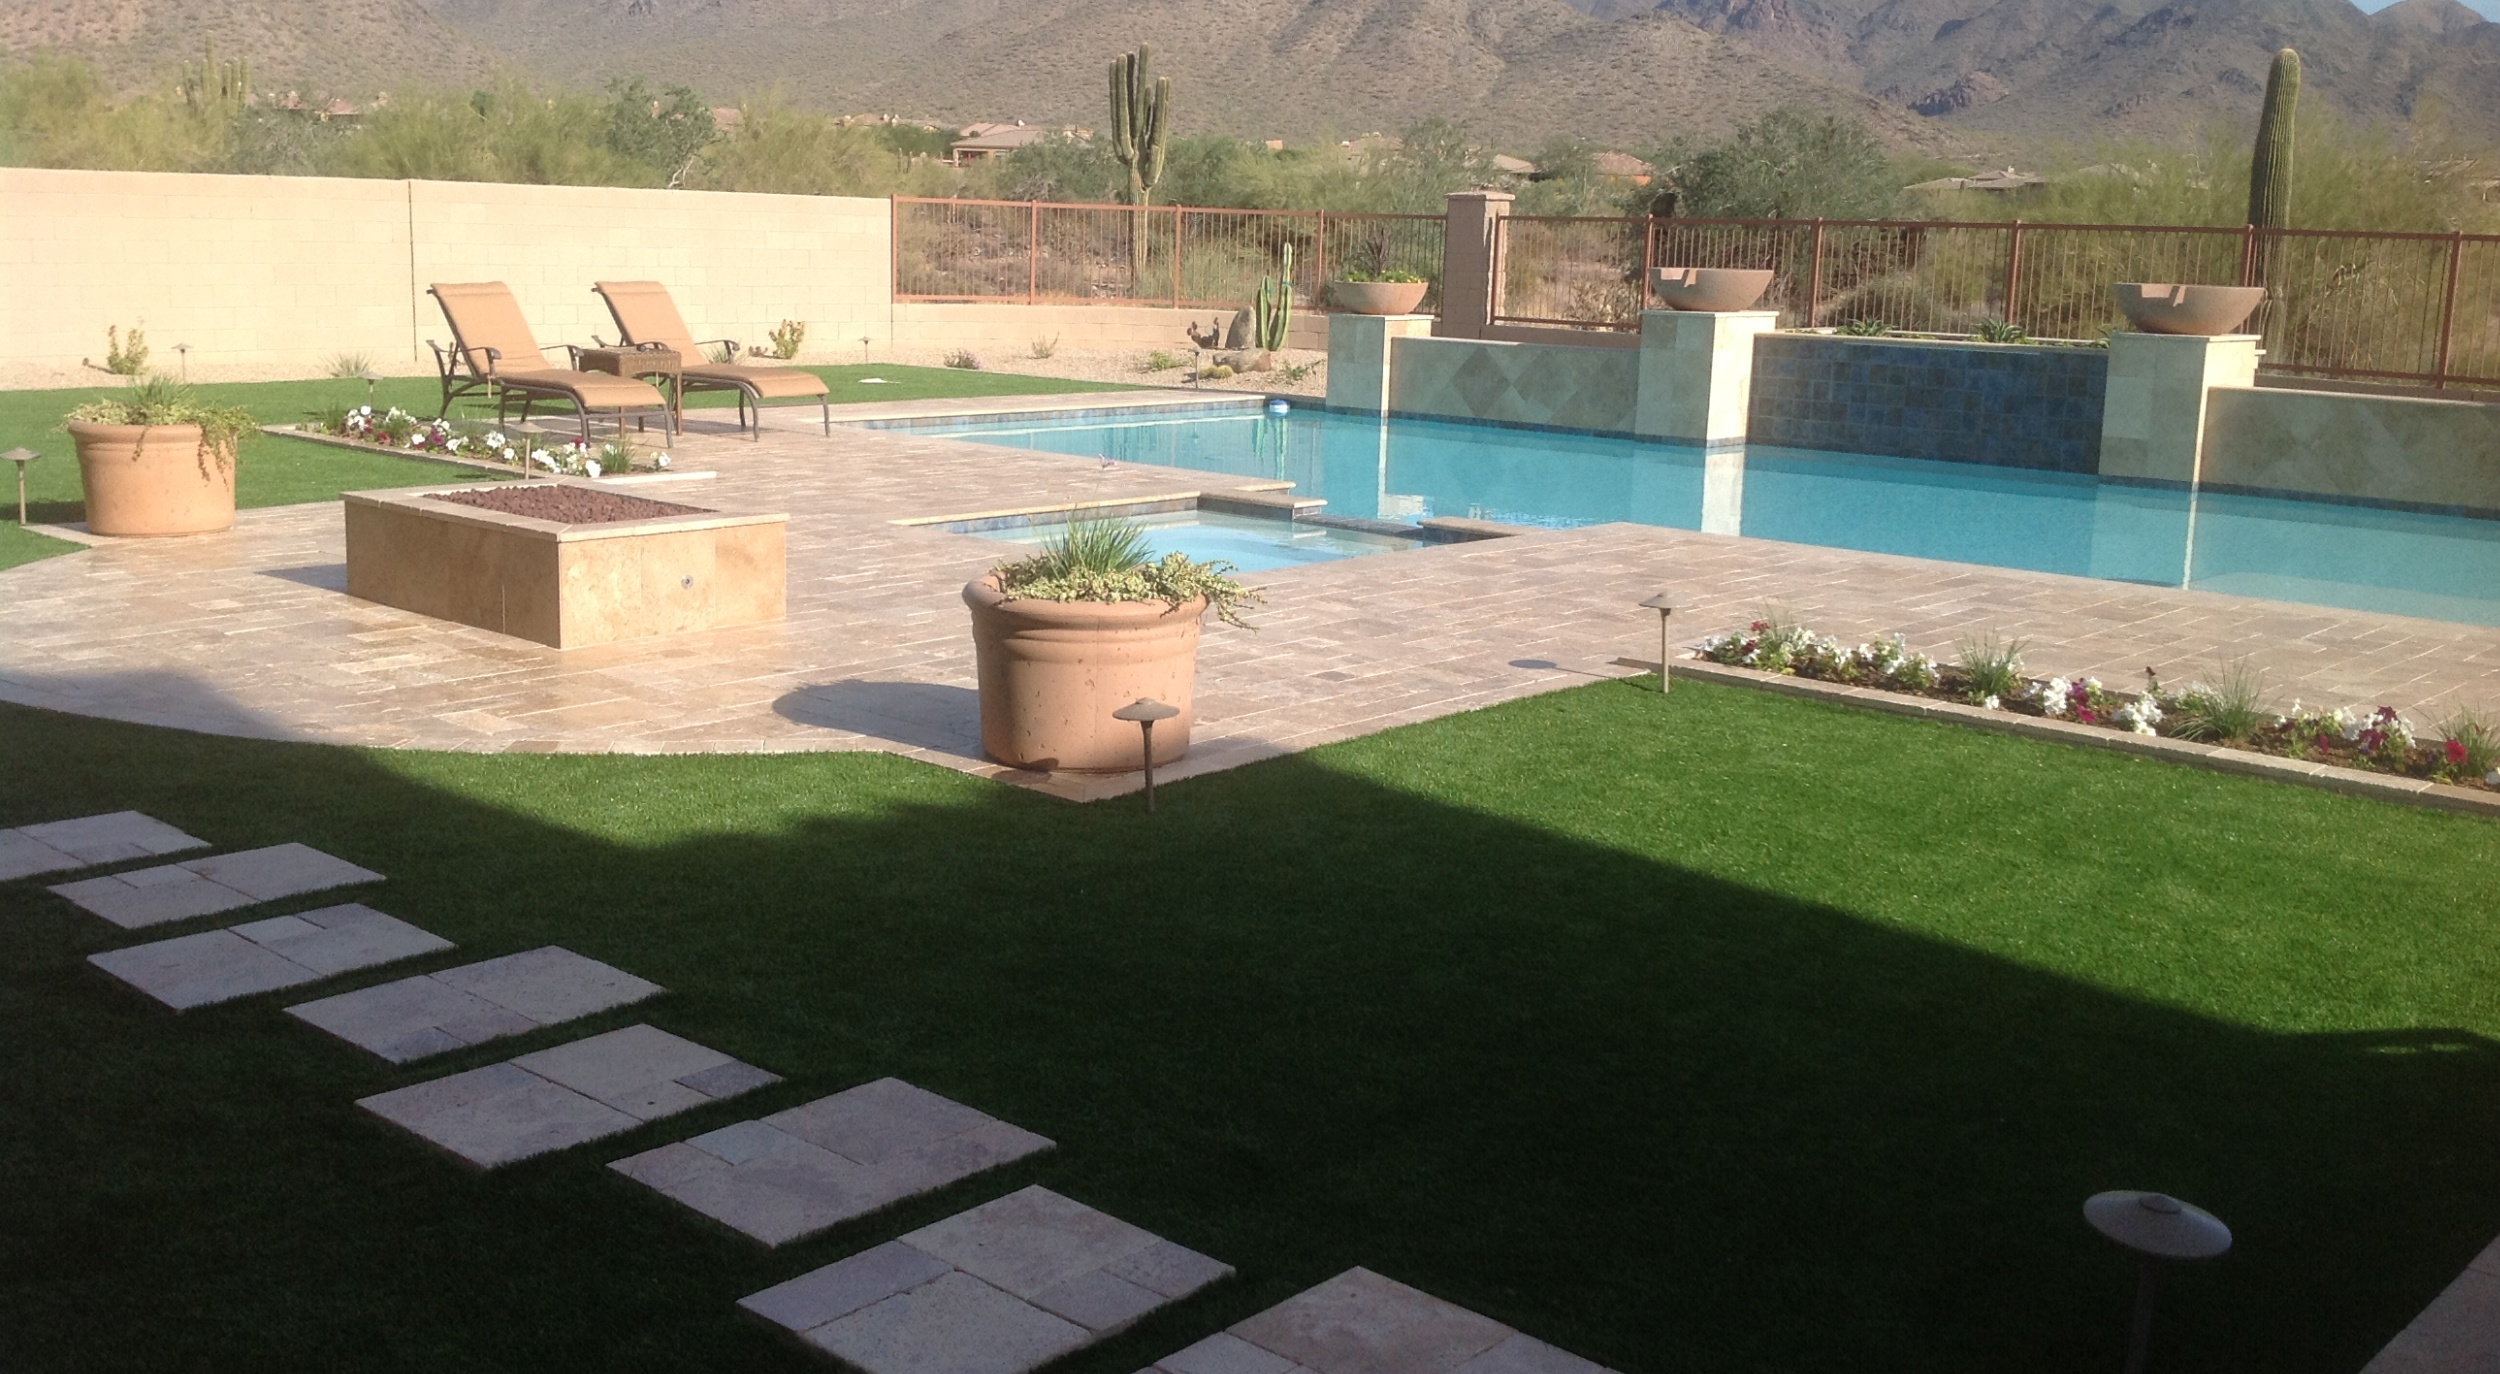 The everything in your yard available Phoenix landscaper, Scottsdale, NW Valley too. This travertine pool deck, fire pit and synthetic lawn is all our work.